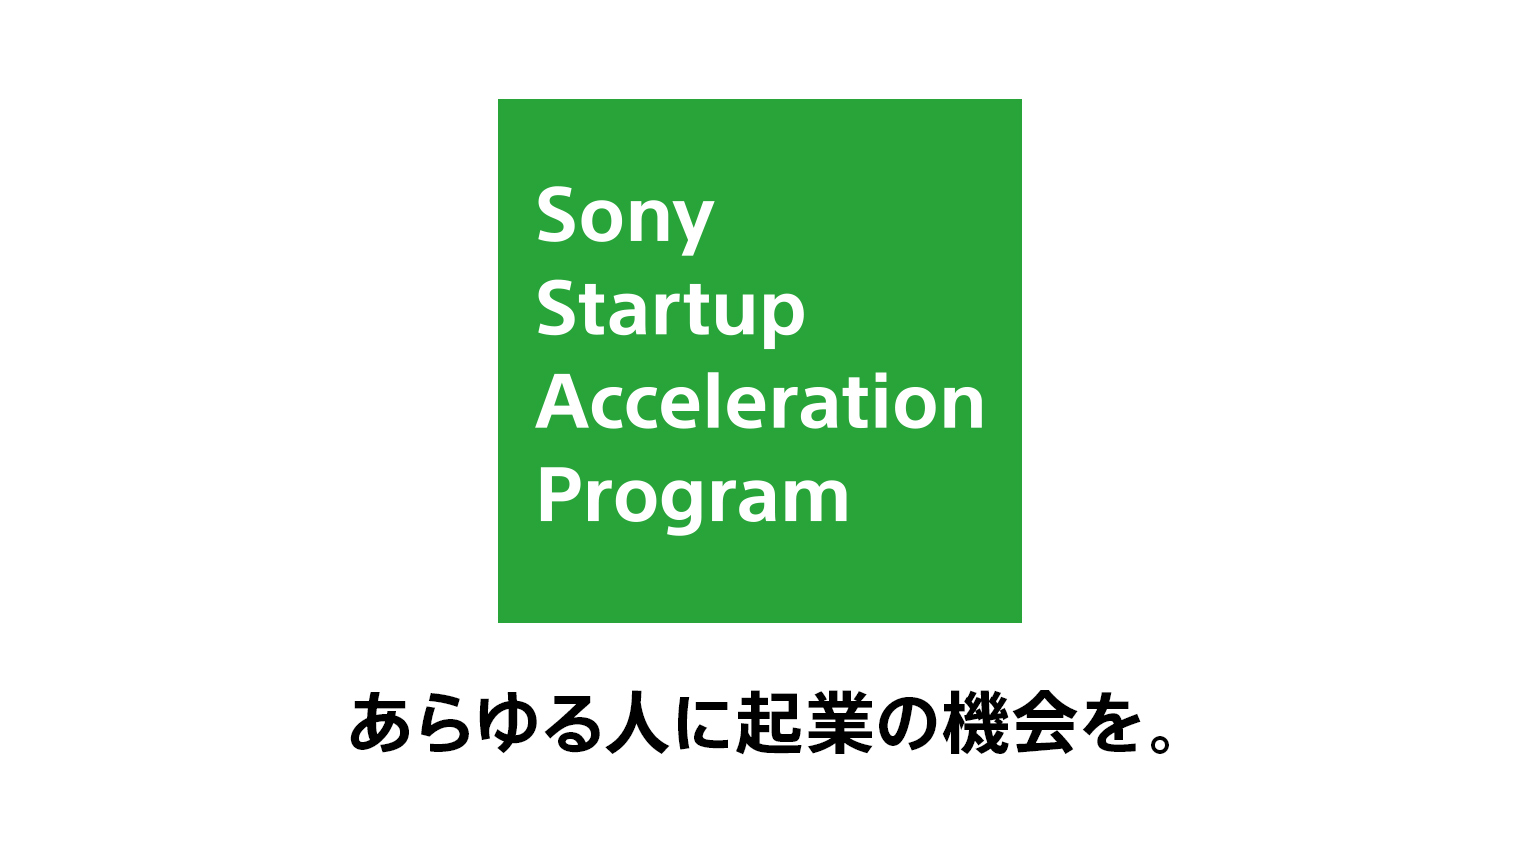 Sony Startup Acceleration Program